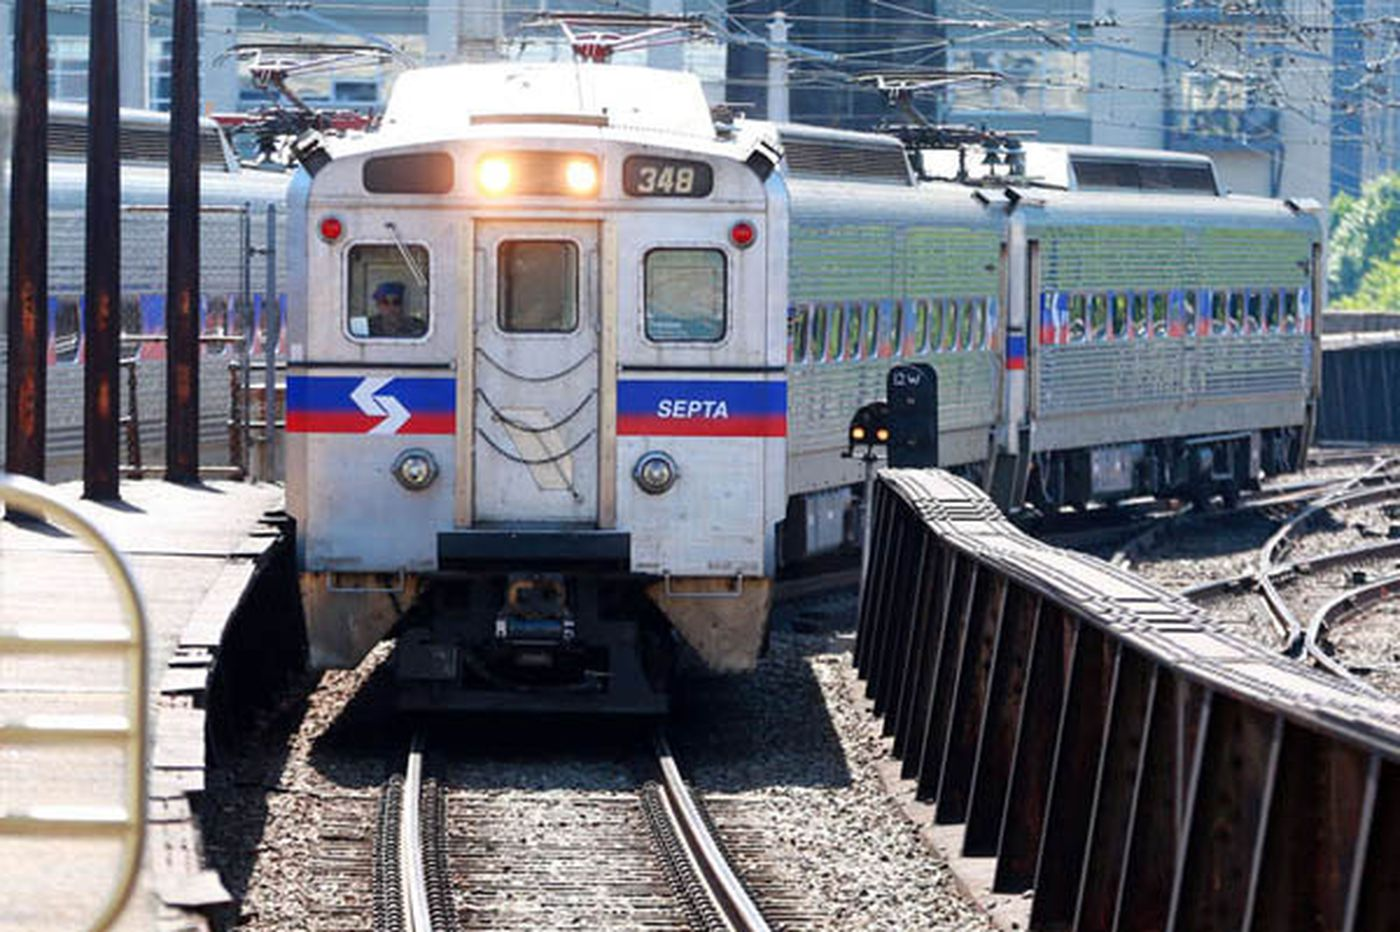 SEPTA invests big in solar panels to save money, reduce greenhouse gas pollution